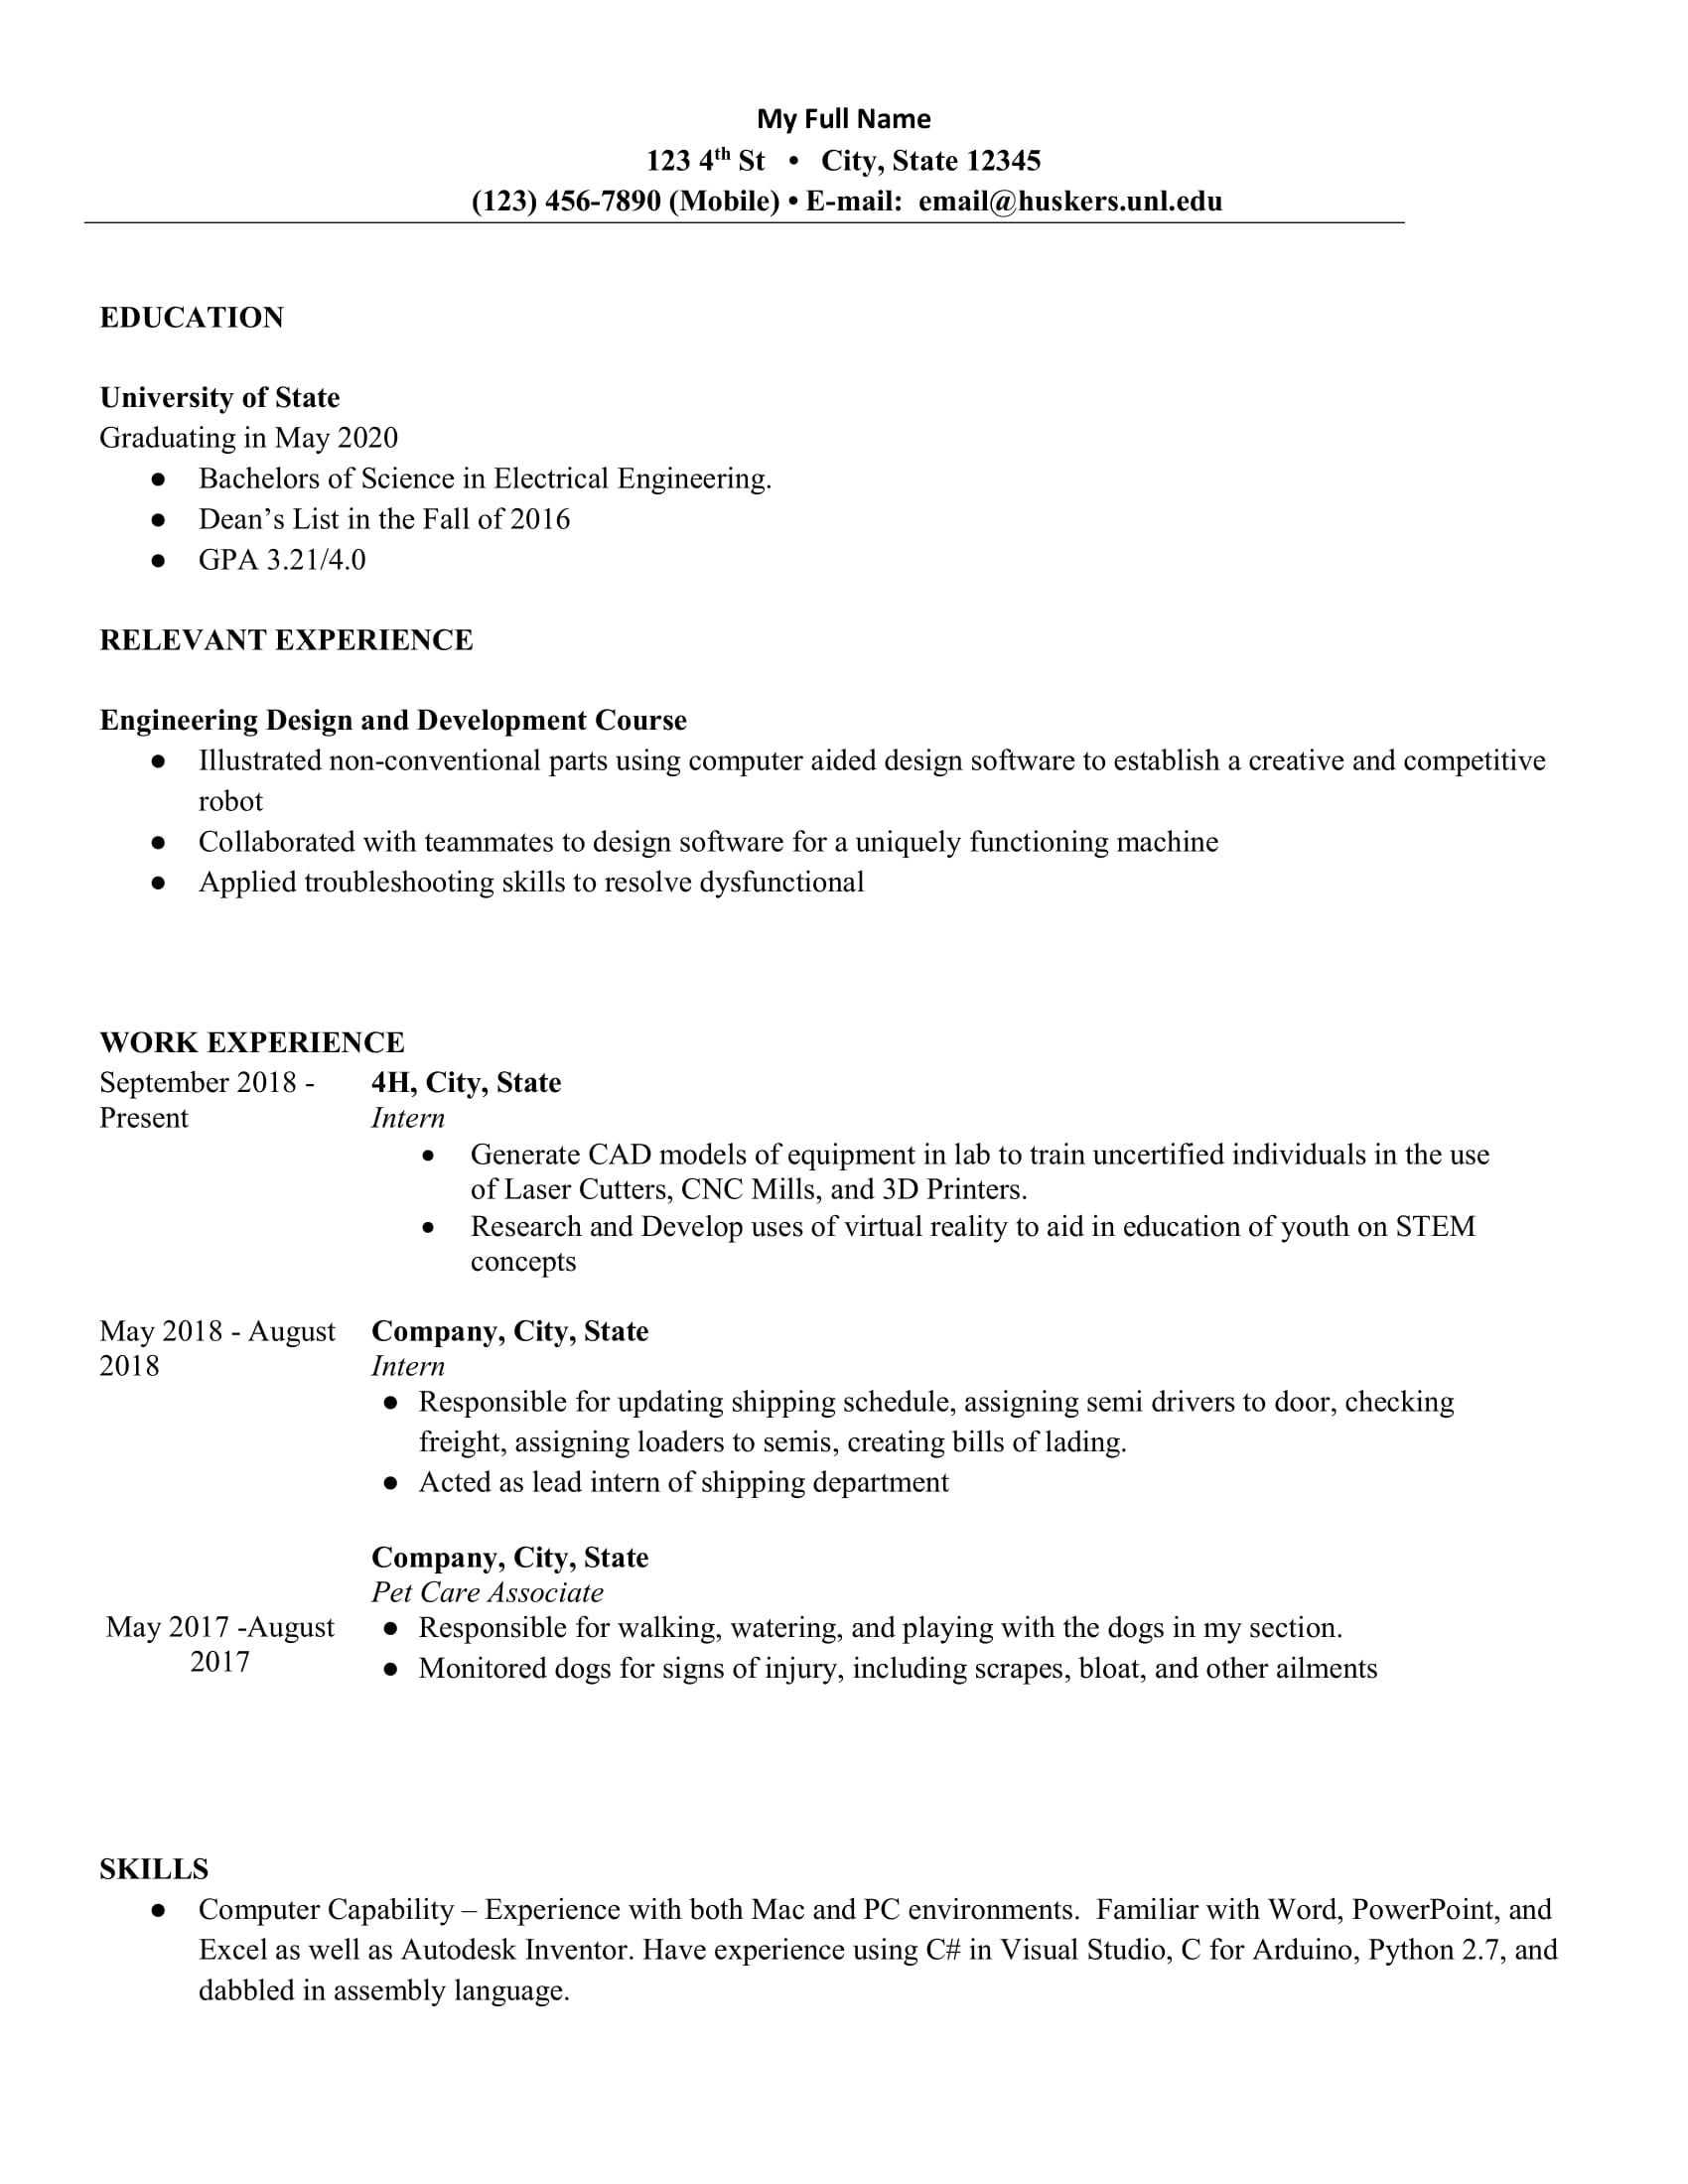 junior electrical engineer looking for internship resumes software intern resume reddit Resume Software Engineer Intern Resume Reddit